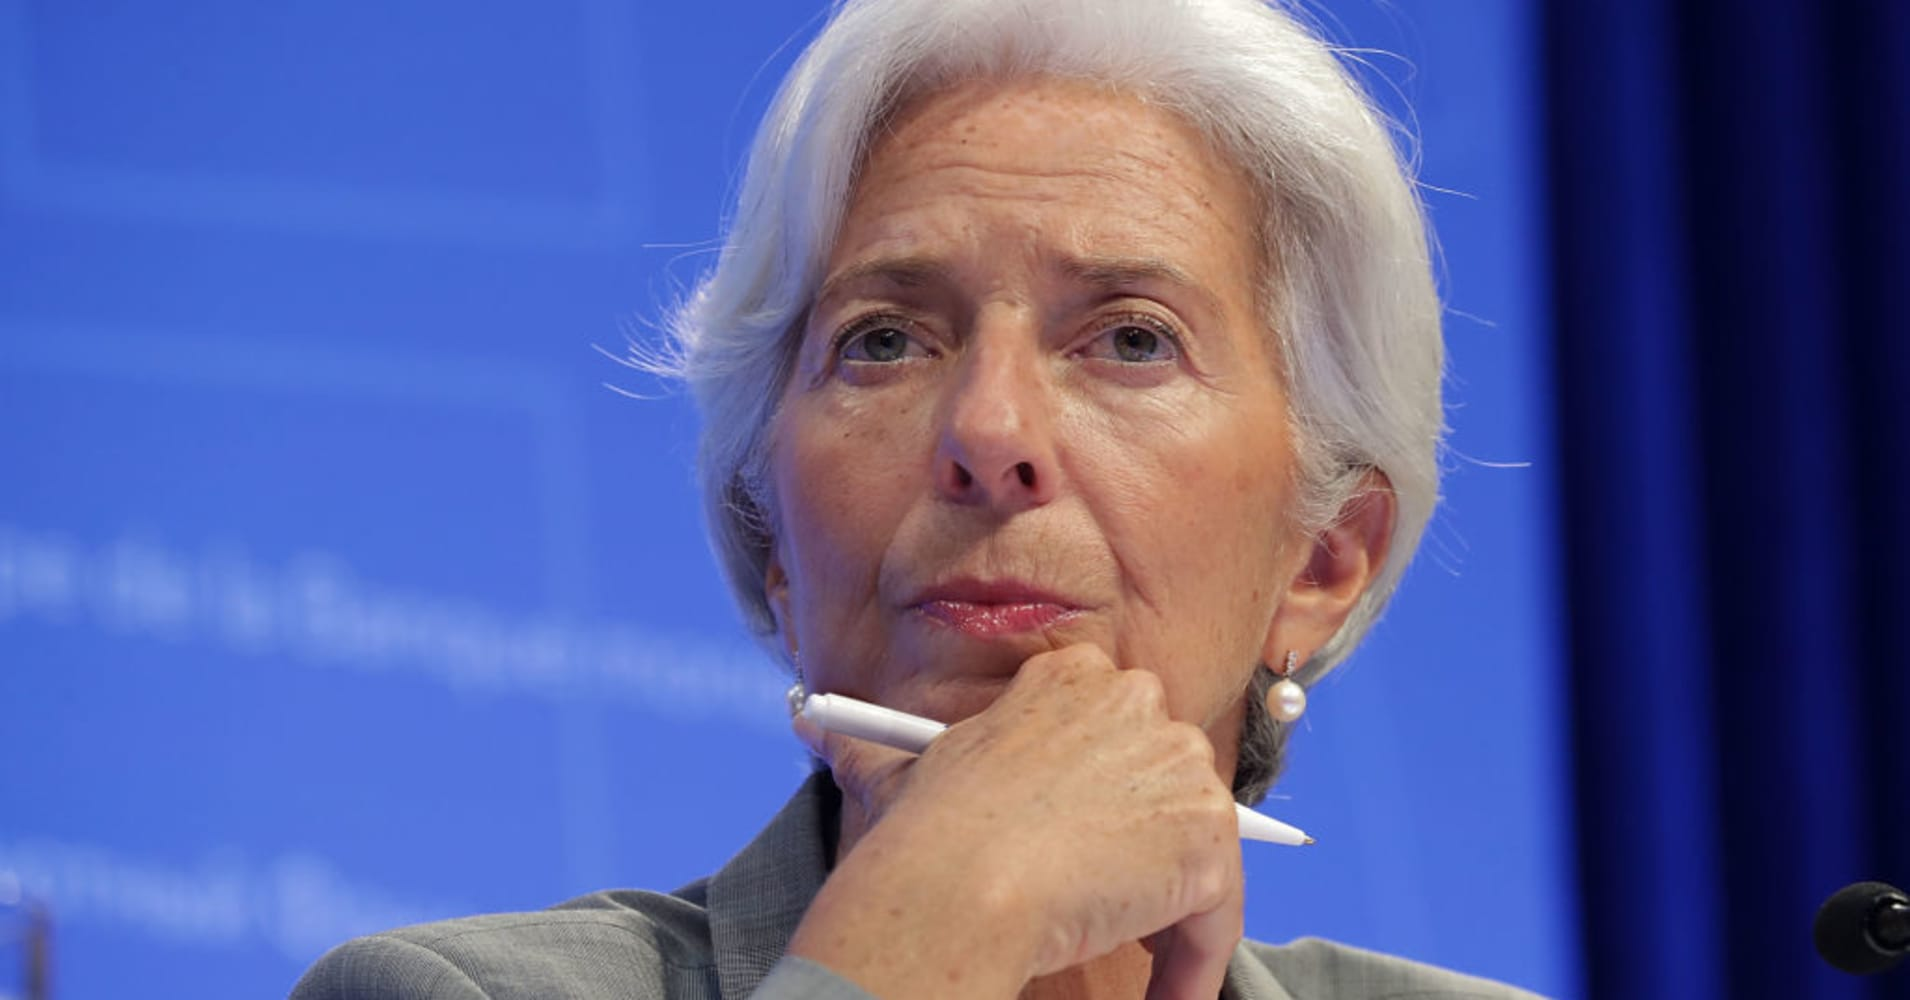 Central Banks Should Consider Issuing Digital Money, IMF's Lagarde Says